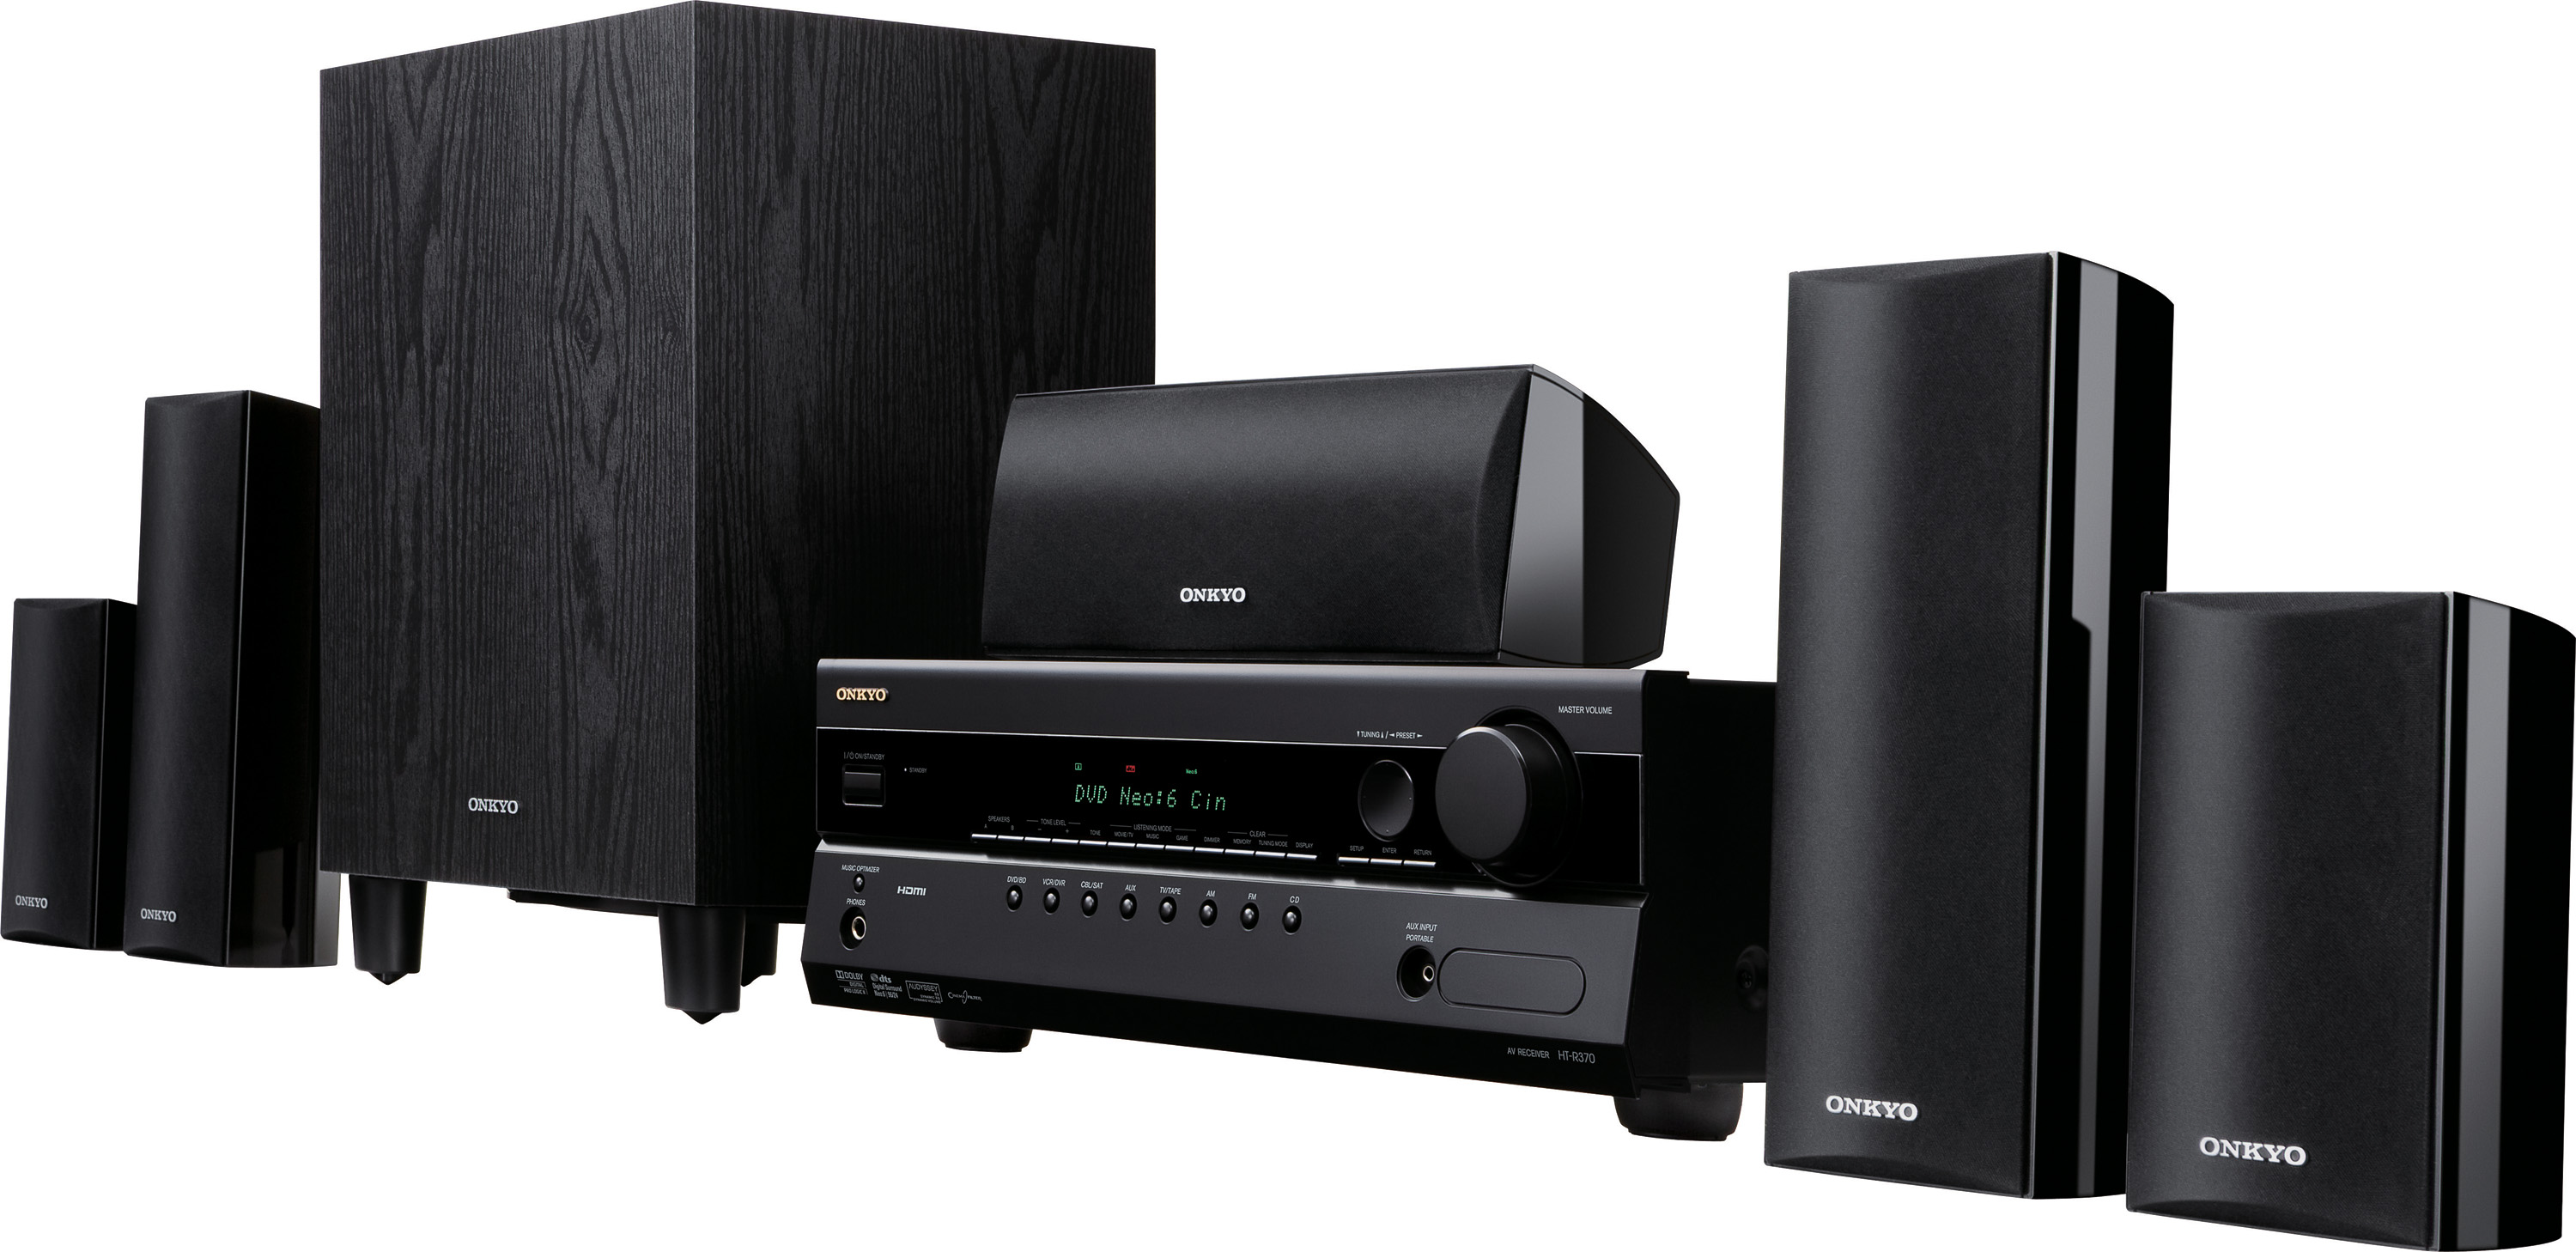 Onkyo intros a pair of entry-level HTiB, HT-S3200 and HT-S5200